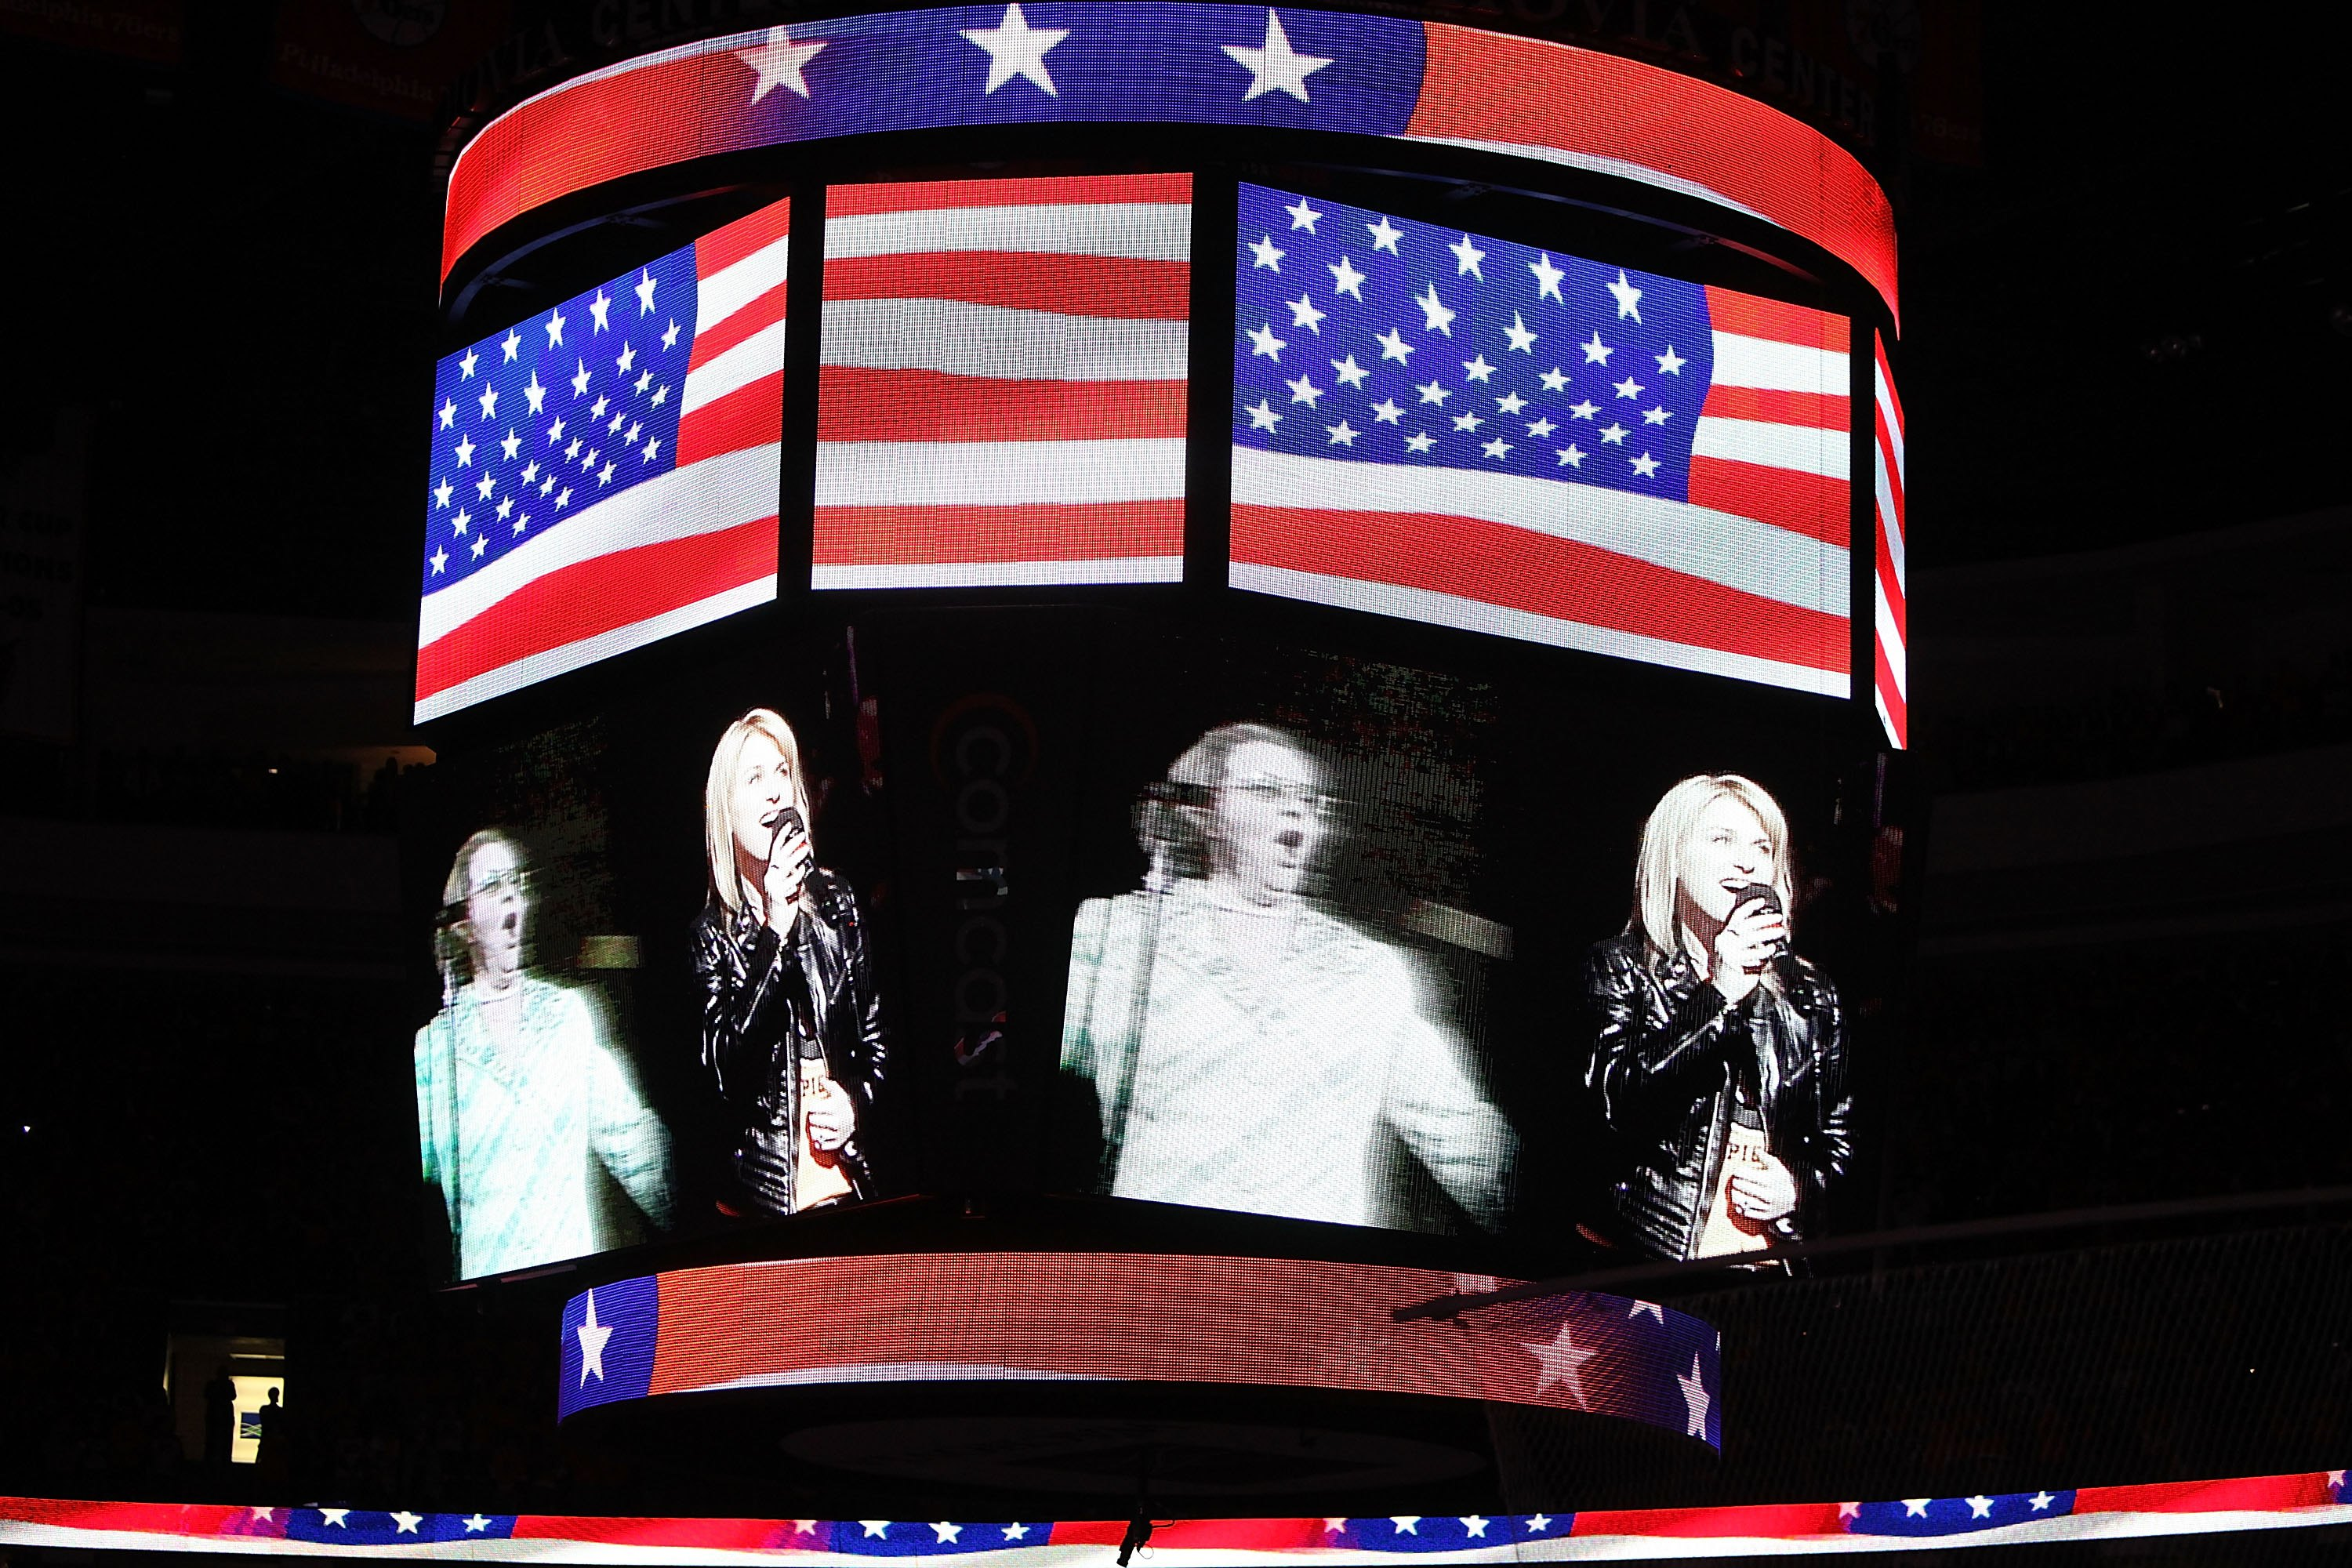 Singers Lauren Hart and Kate Smith are seen on the screen before Game Six of the 2010 NHL Stanley Cup Final between the Chicago Blackhawks and the Philadelphia Flyers at the Wachovia Center on June 9, 2010 in Philadelphia, Pennsylvania. (Photo by Andre Ringuette/Getty Images)